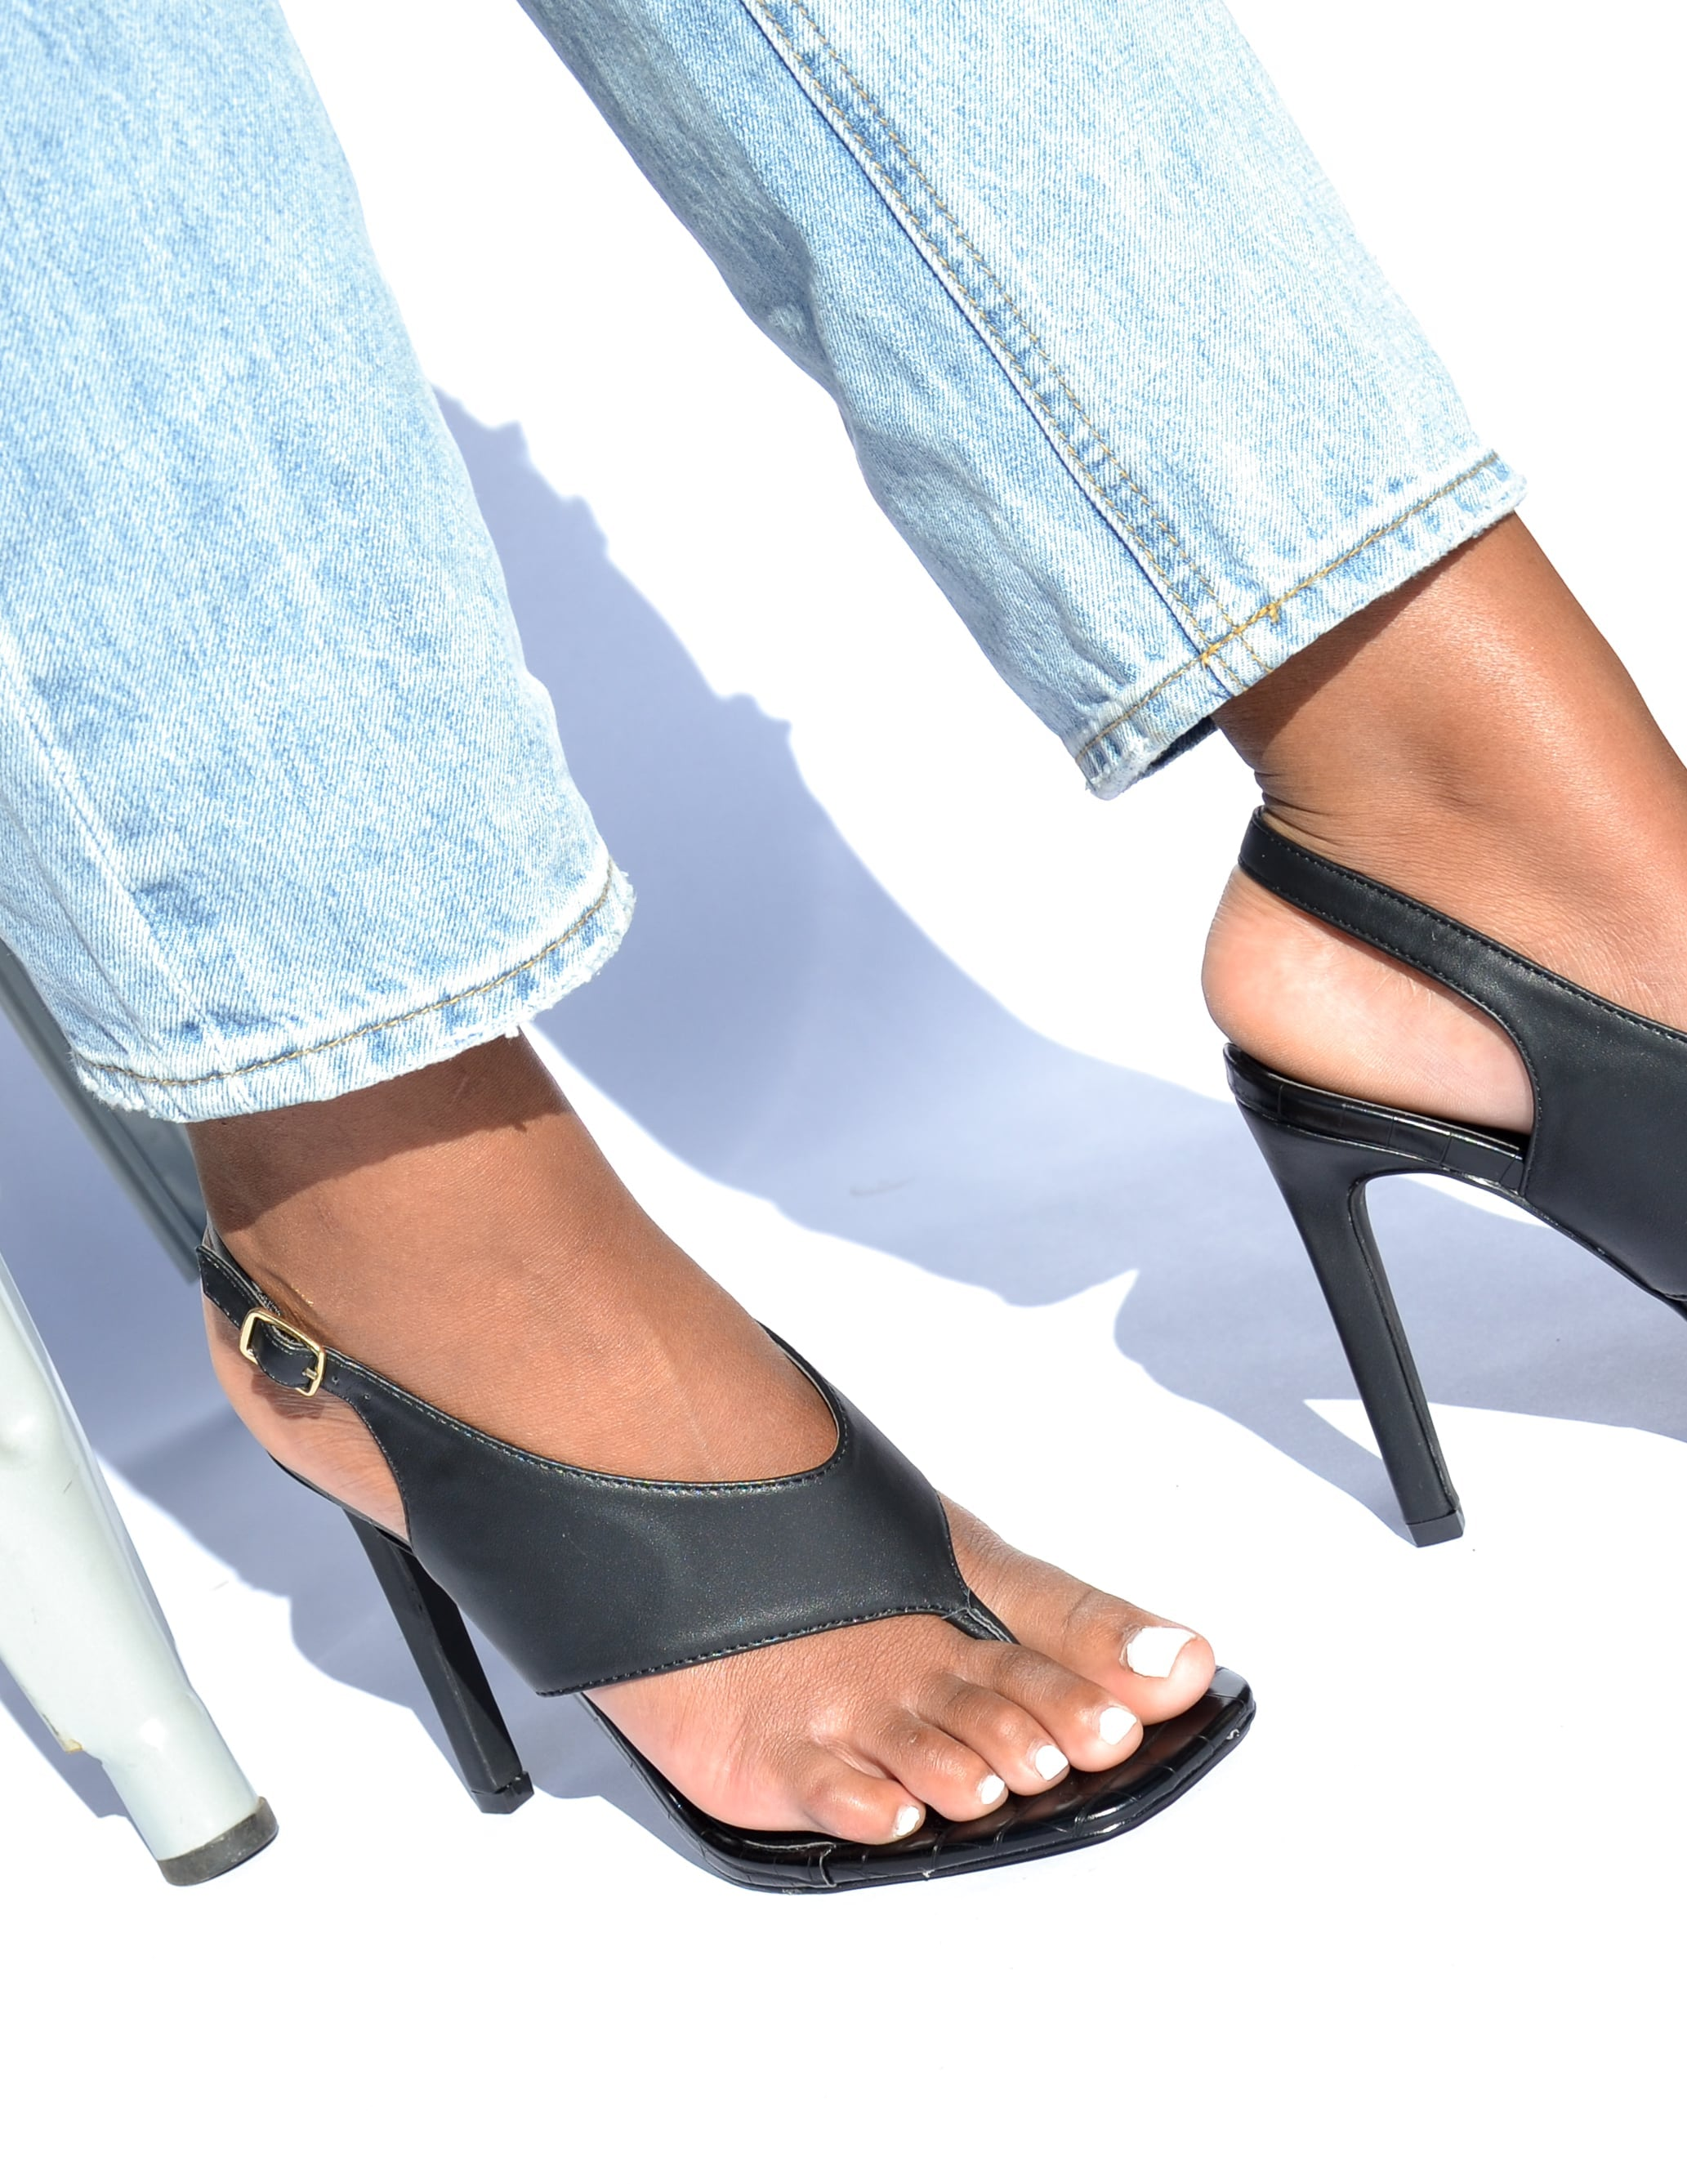 Black sandal open toe heels on model - elle bleu shoes